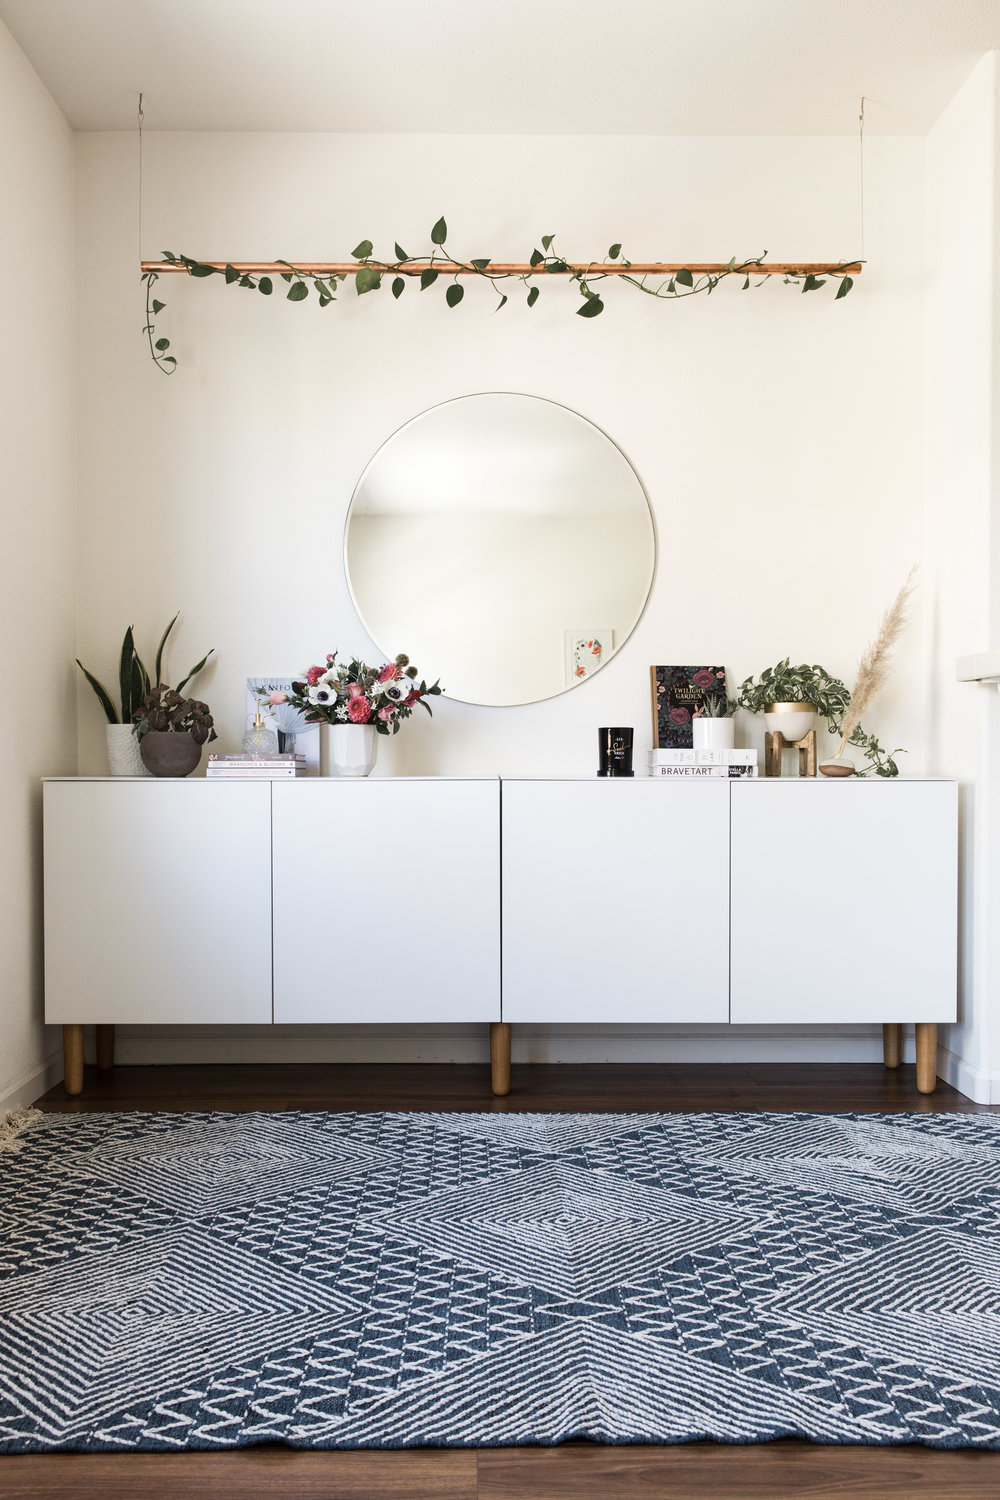 storage unit     |  rug (discontinued from west elm)  |  mirror (discontinued from west elm)